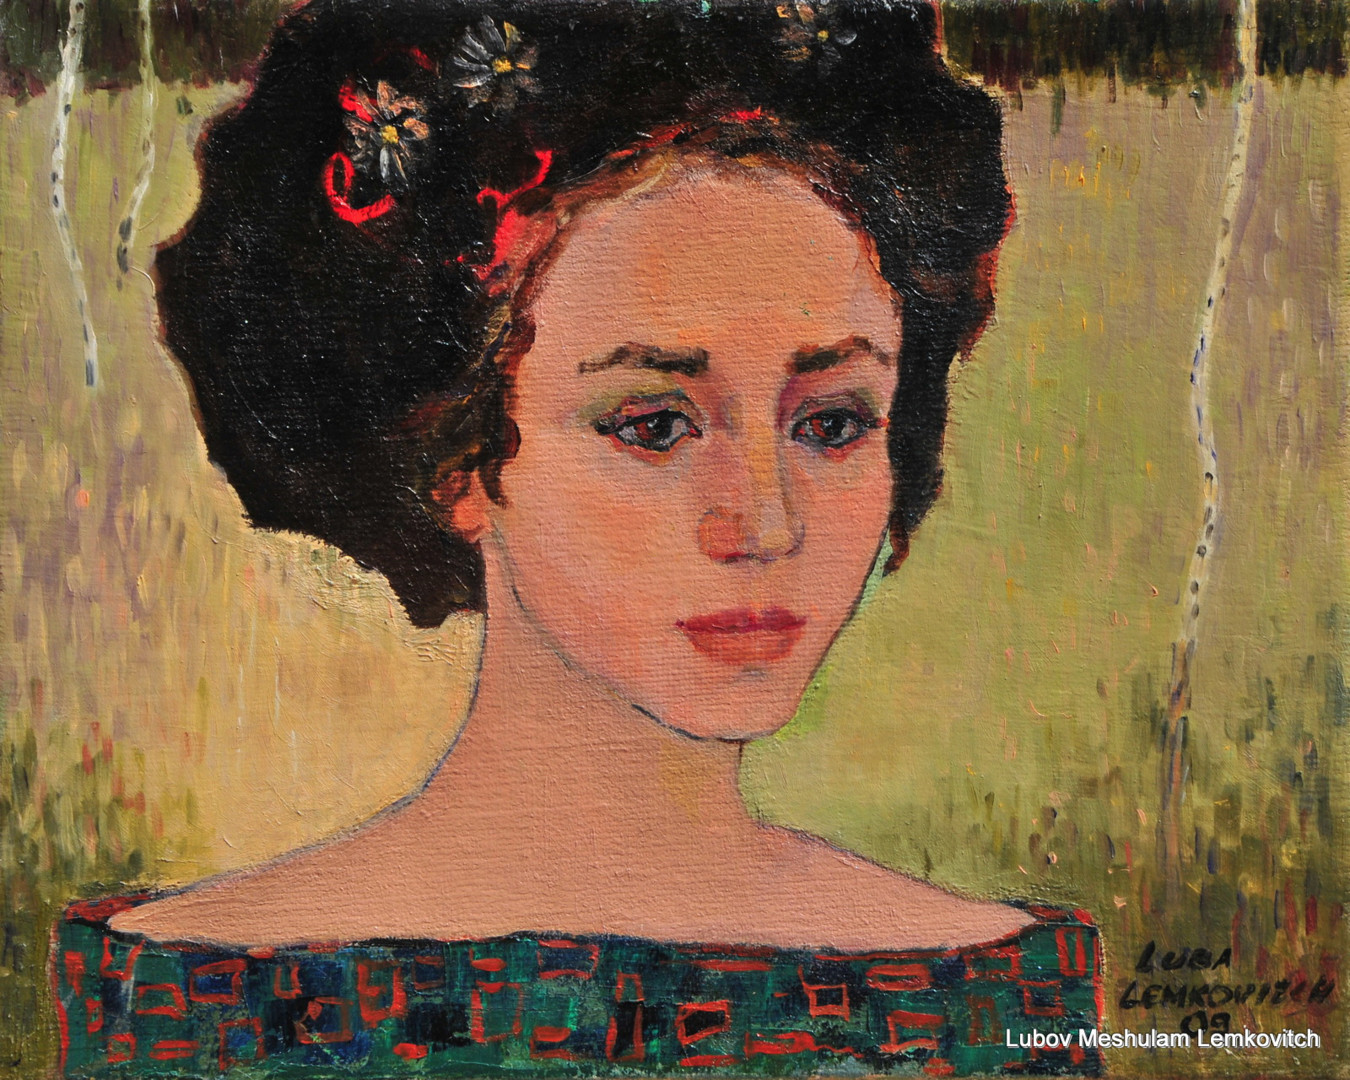 lubalem - lubov-meshulam-lemkovitch-portrait-of-young-woman-oil-on-canvas-40x50cm-001.jpg